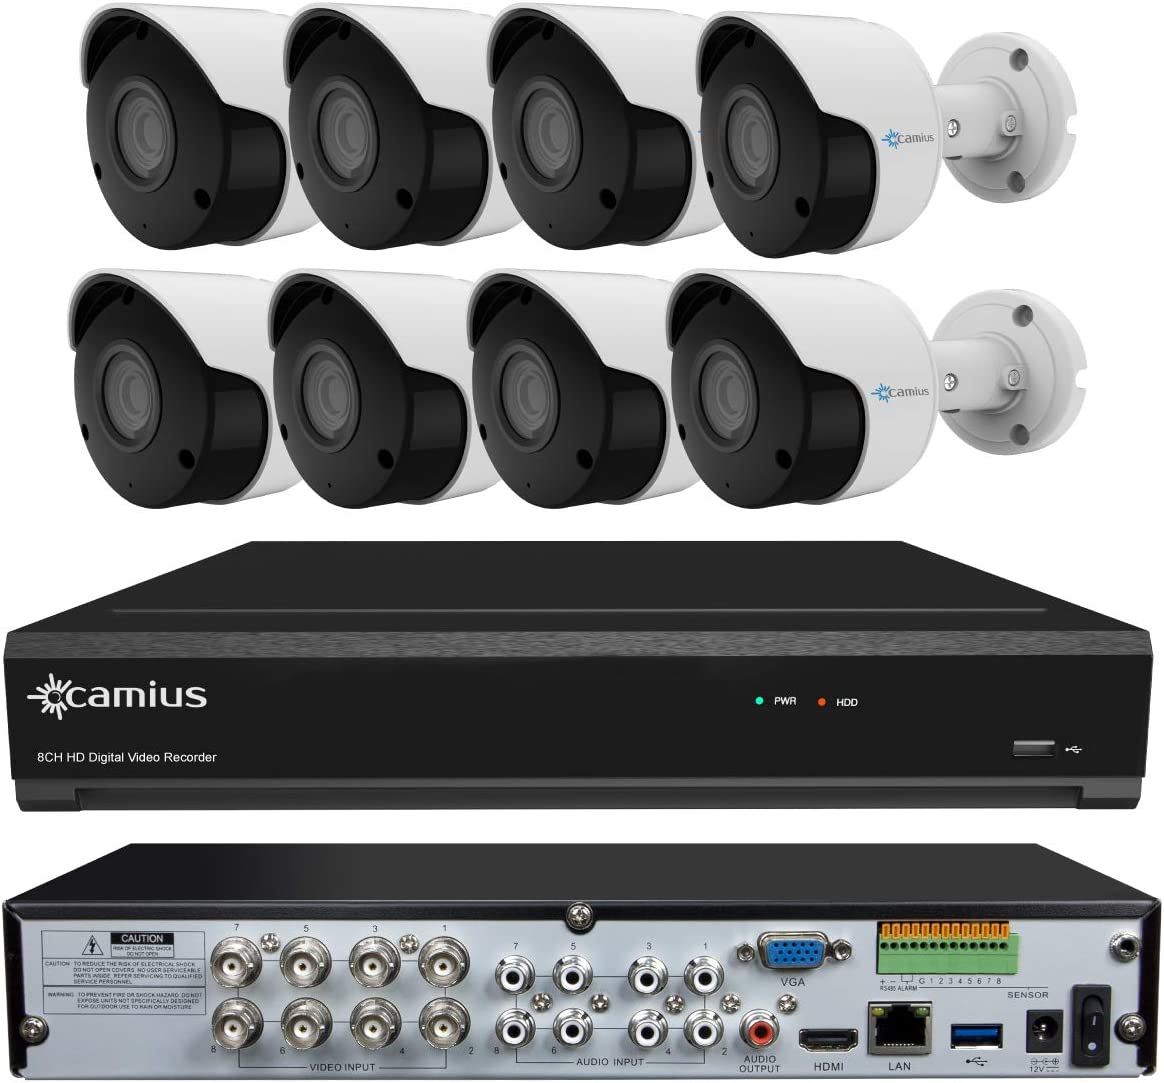 Camius 4K 12CH DVR NVR Security System with 8 Wired Analog Indoor-Outdoor 5MP Bullet Cameras – Wide 3.6mm, Color Night Vision – 5-in-1 XVR Works as 8CH DVR 4CH IP NVR – Without HDD